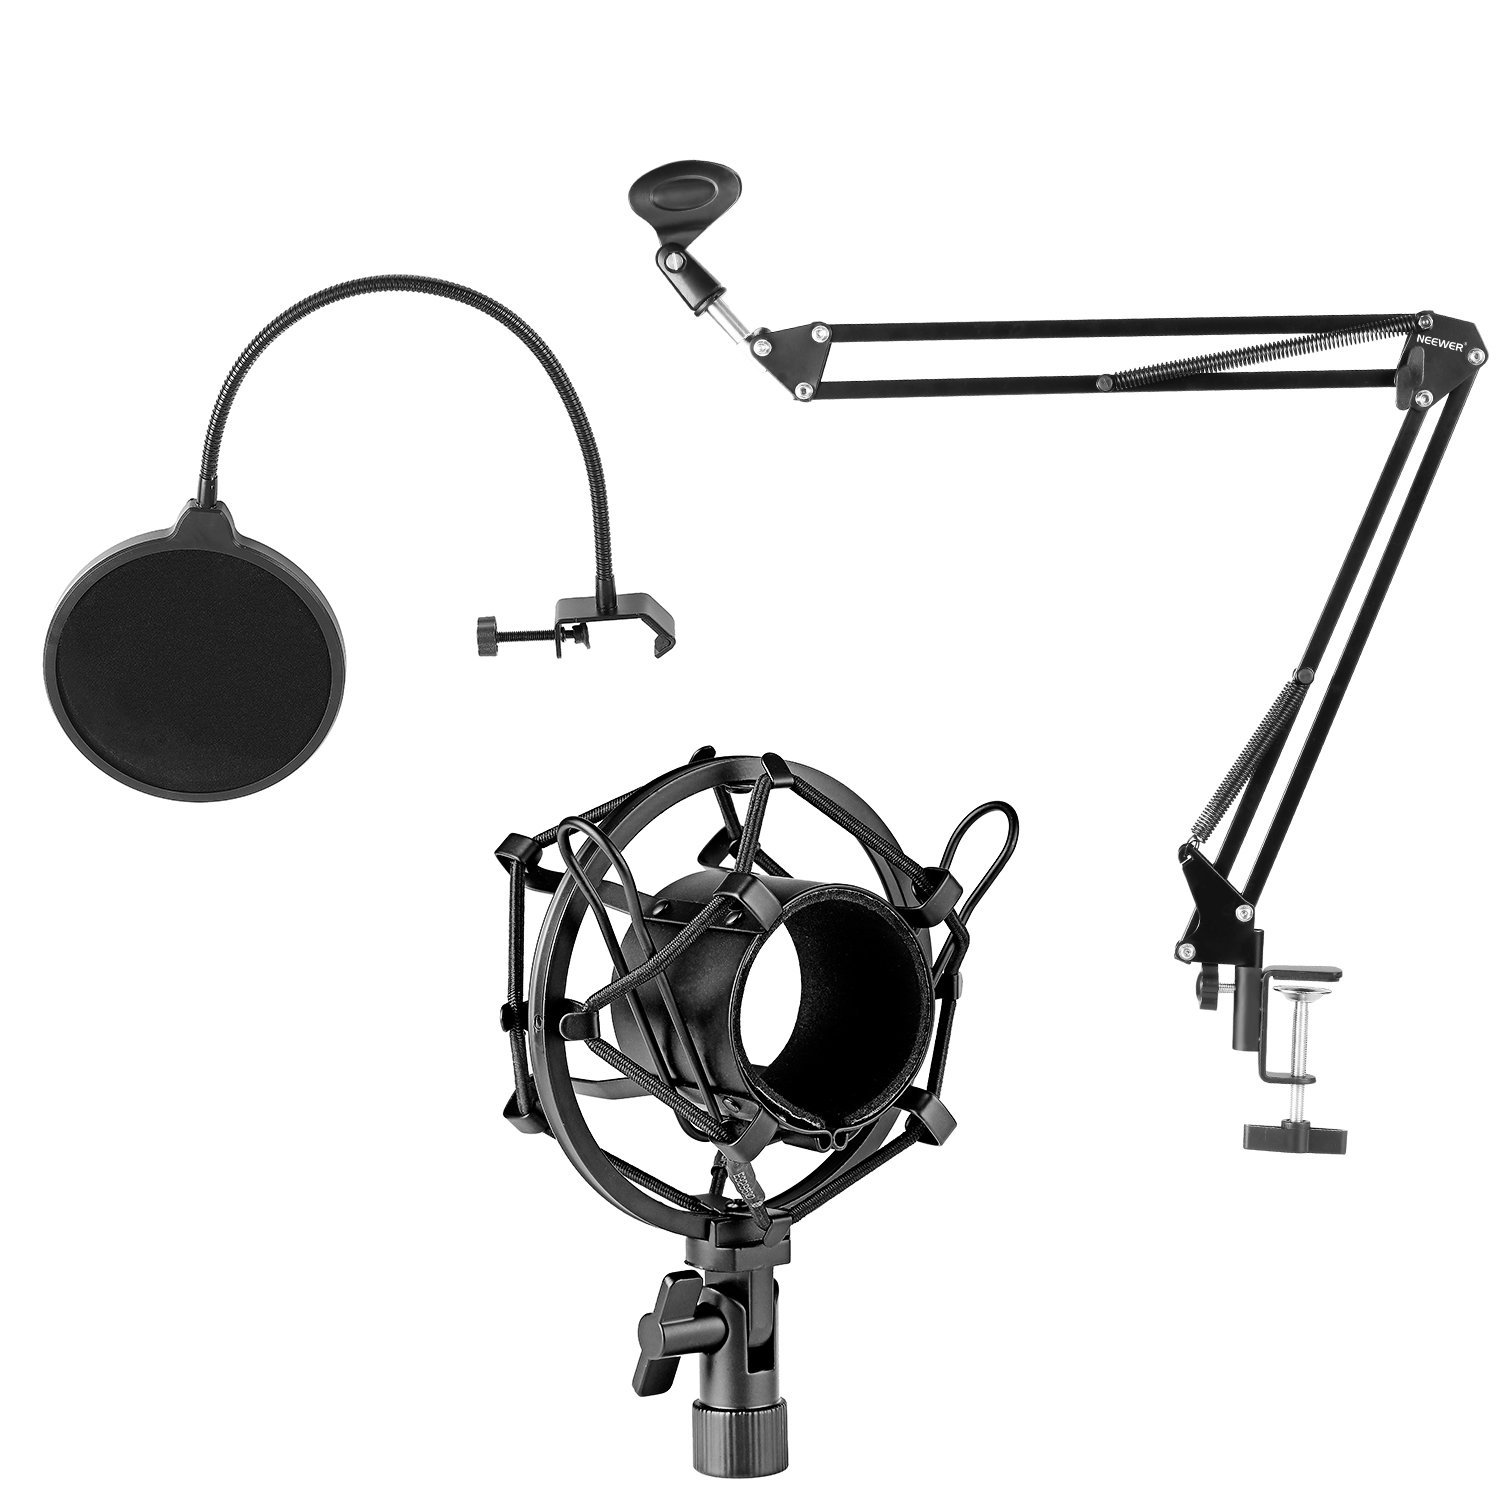 amazon neewer nb 35 microphone suspension boom scissor arm TV Base Stand Replacement Parts amazon neewer nb 35 microphone suspension boom scissor arm stand with mic clip holder and table mounting cl nw b 3 pop filter windscreen mask